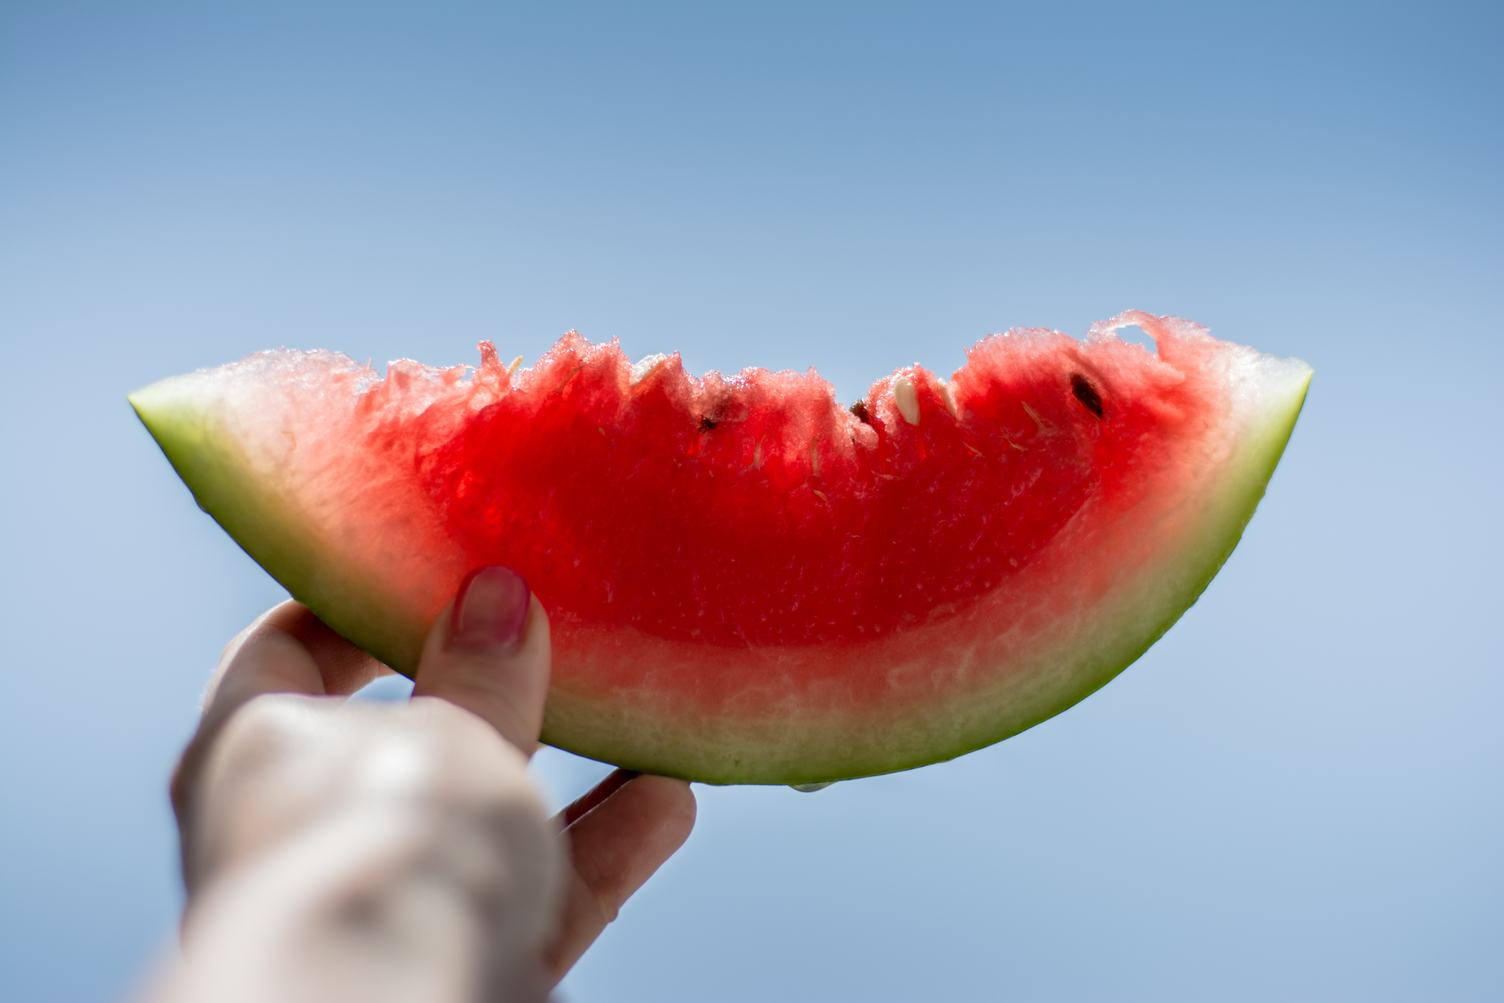 Woman Holding Juicy Slice of Watermelon in Her Hand